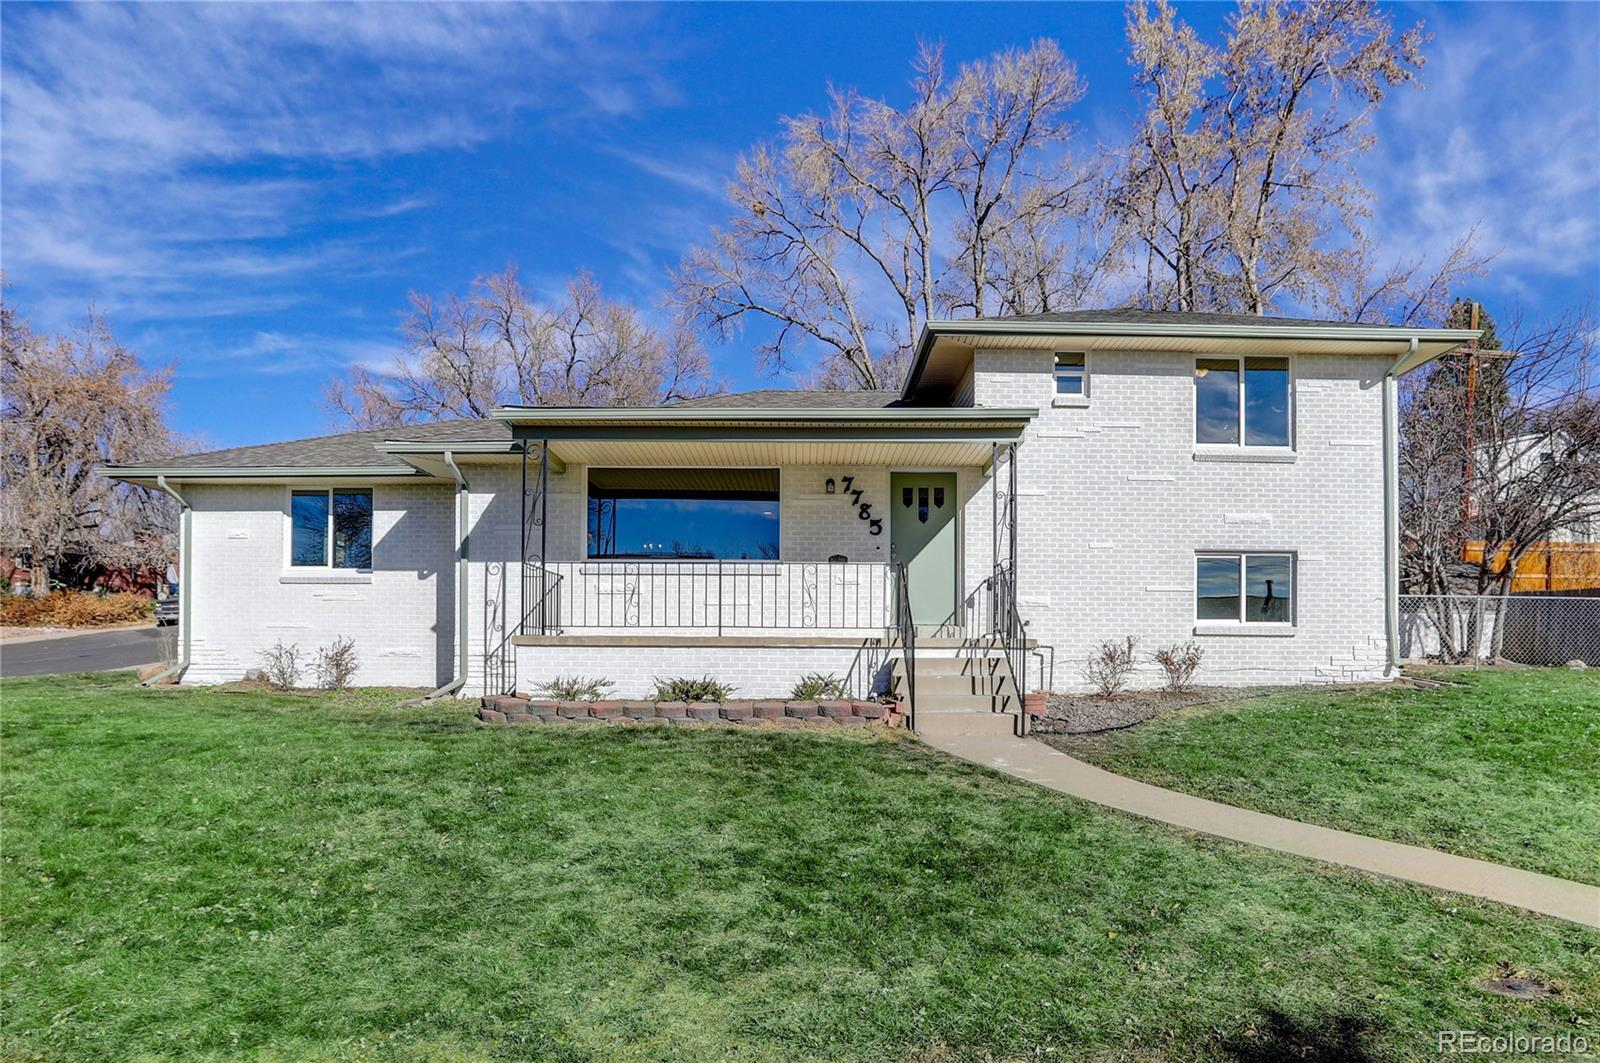 7785 W 62nd Place, Arvada, CO 80004 - #: 8731392